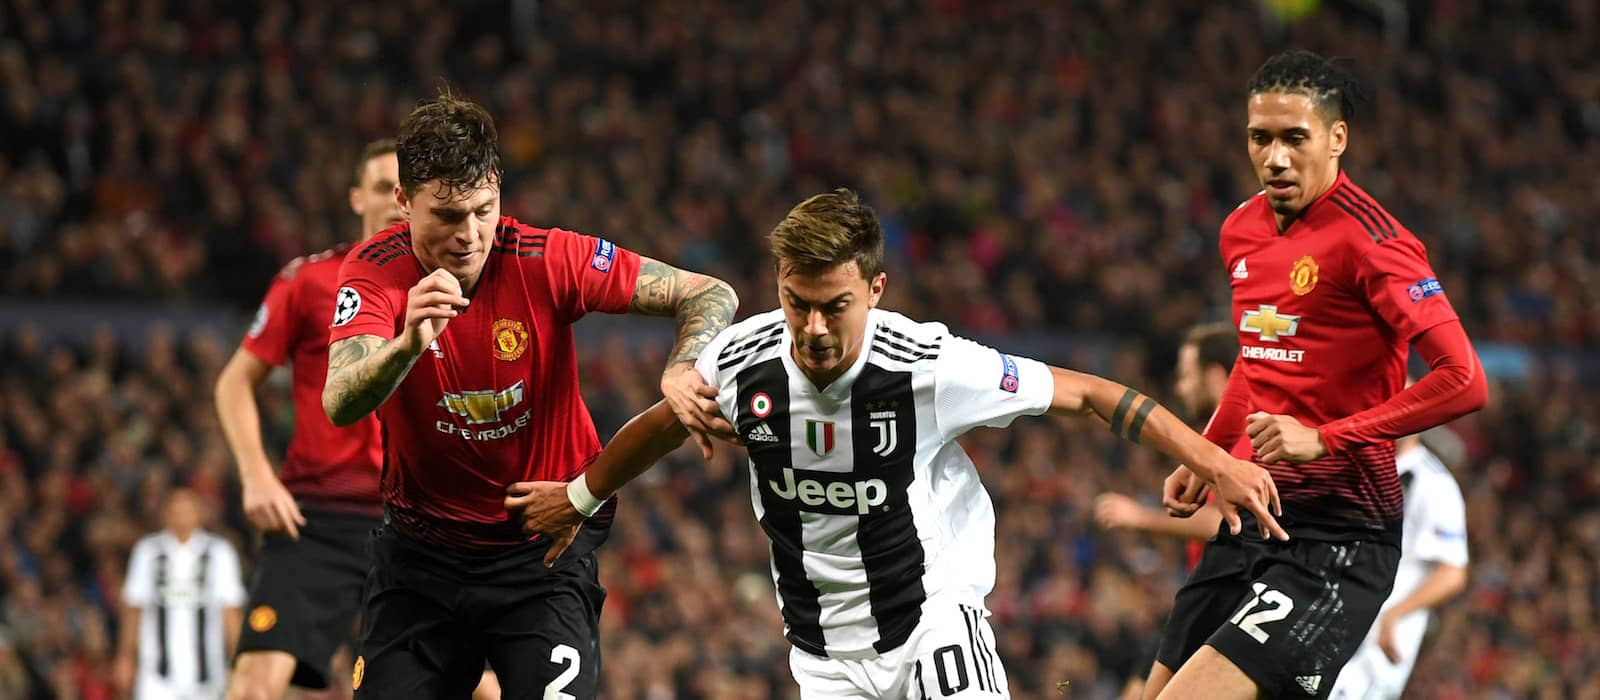 Juventus vs Manchester United: Predicted starting XI